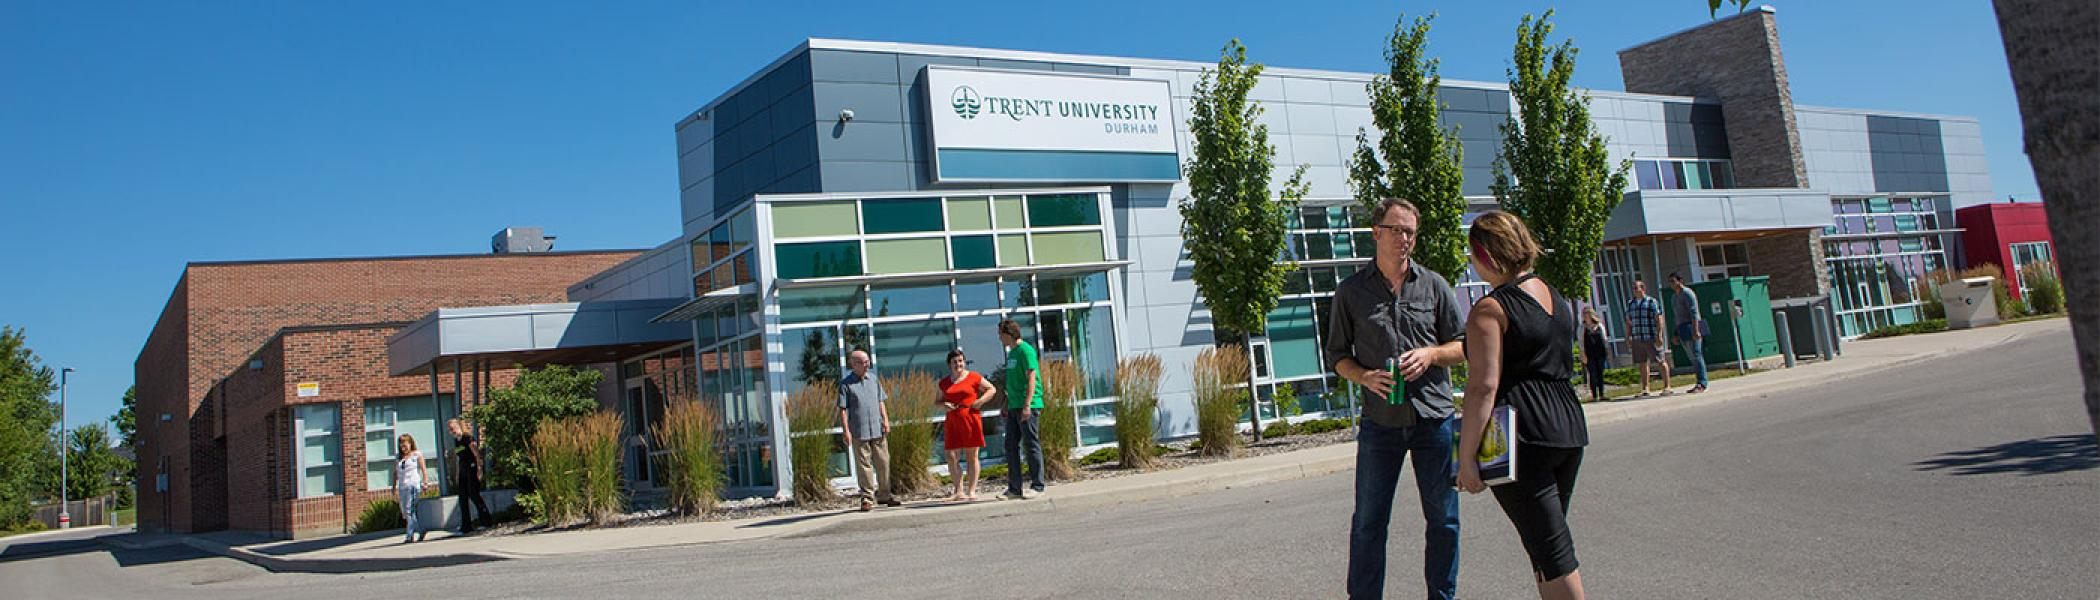 Two people standing in front of Trent University Durham campus building on a sunny day.